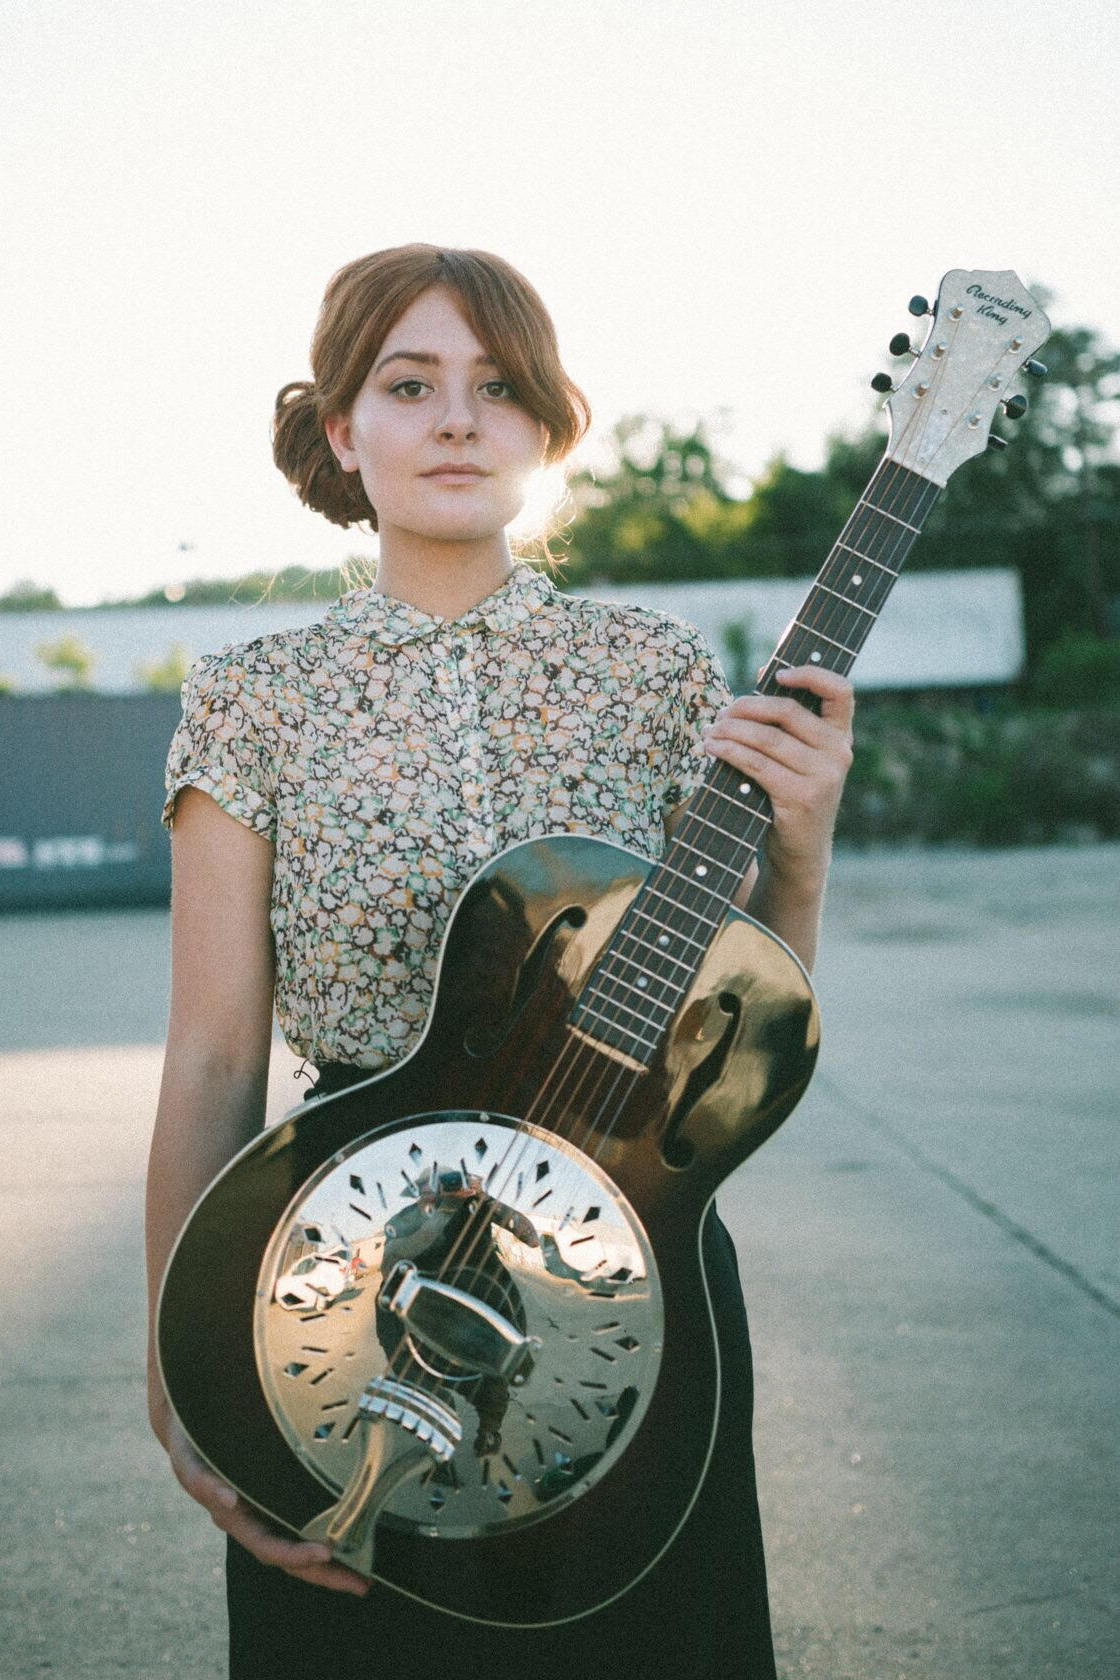 Libby DeCamp plays the Rattlesnake